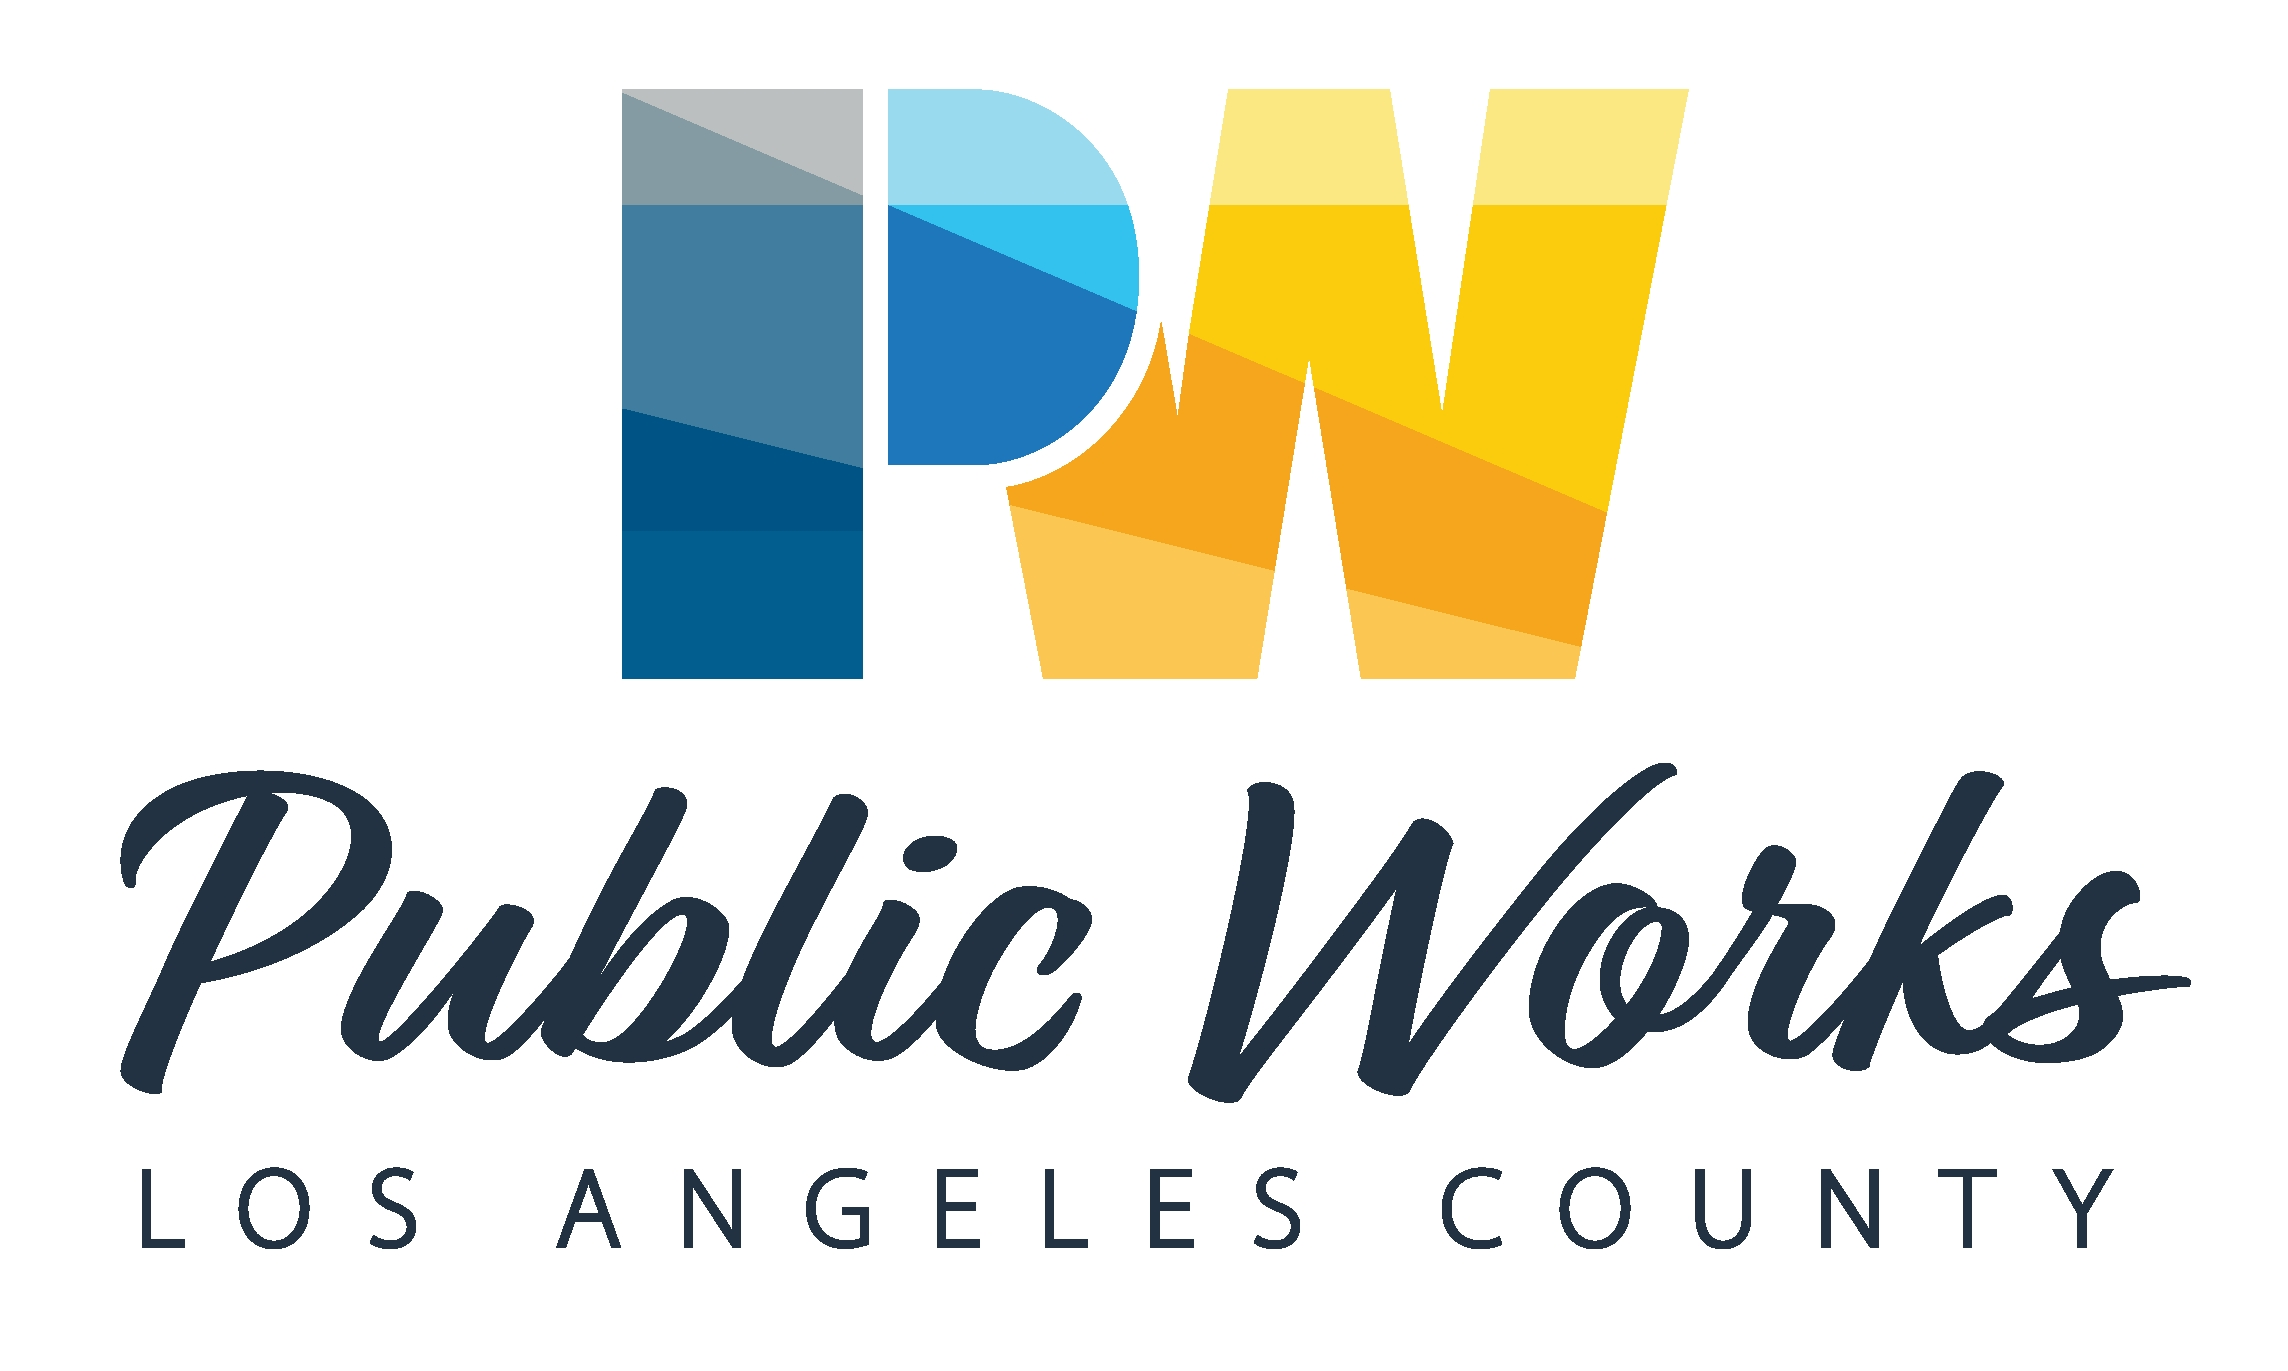 La County Department Of Public Works | Verdexchange with regard to La County Public Works